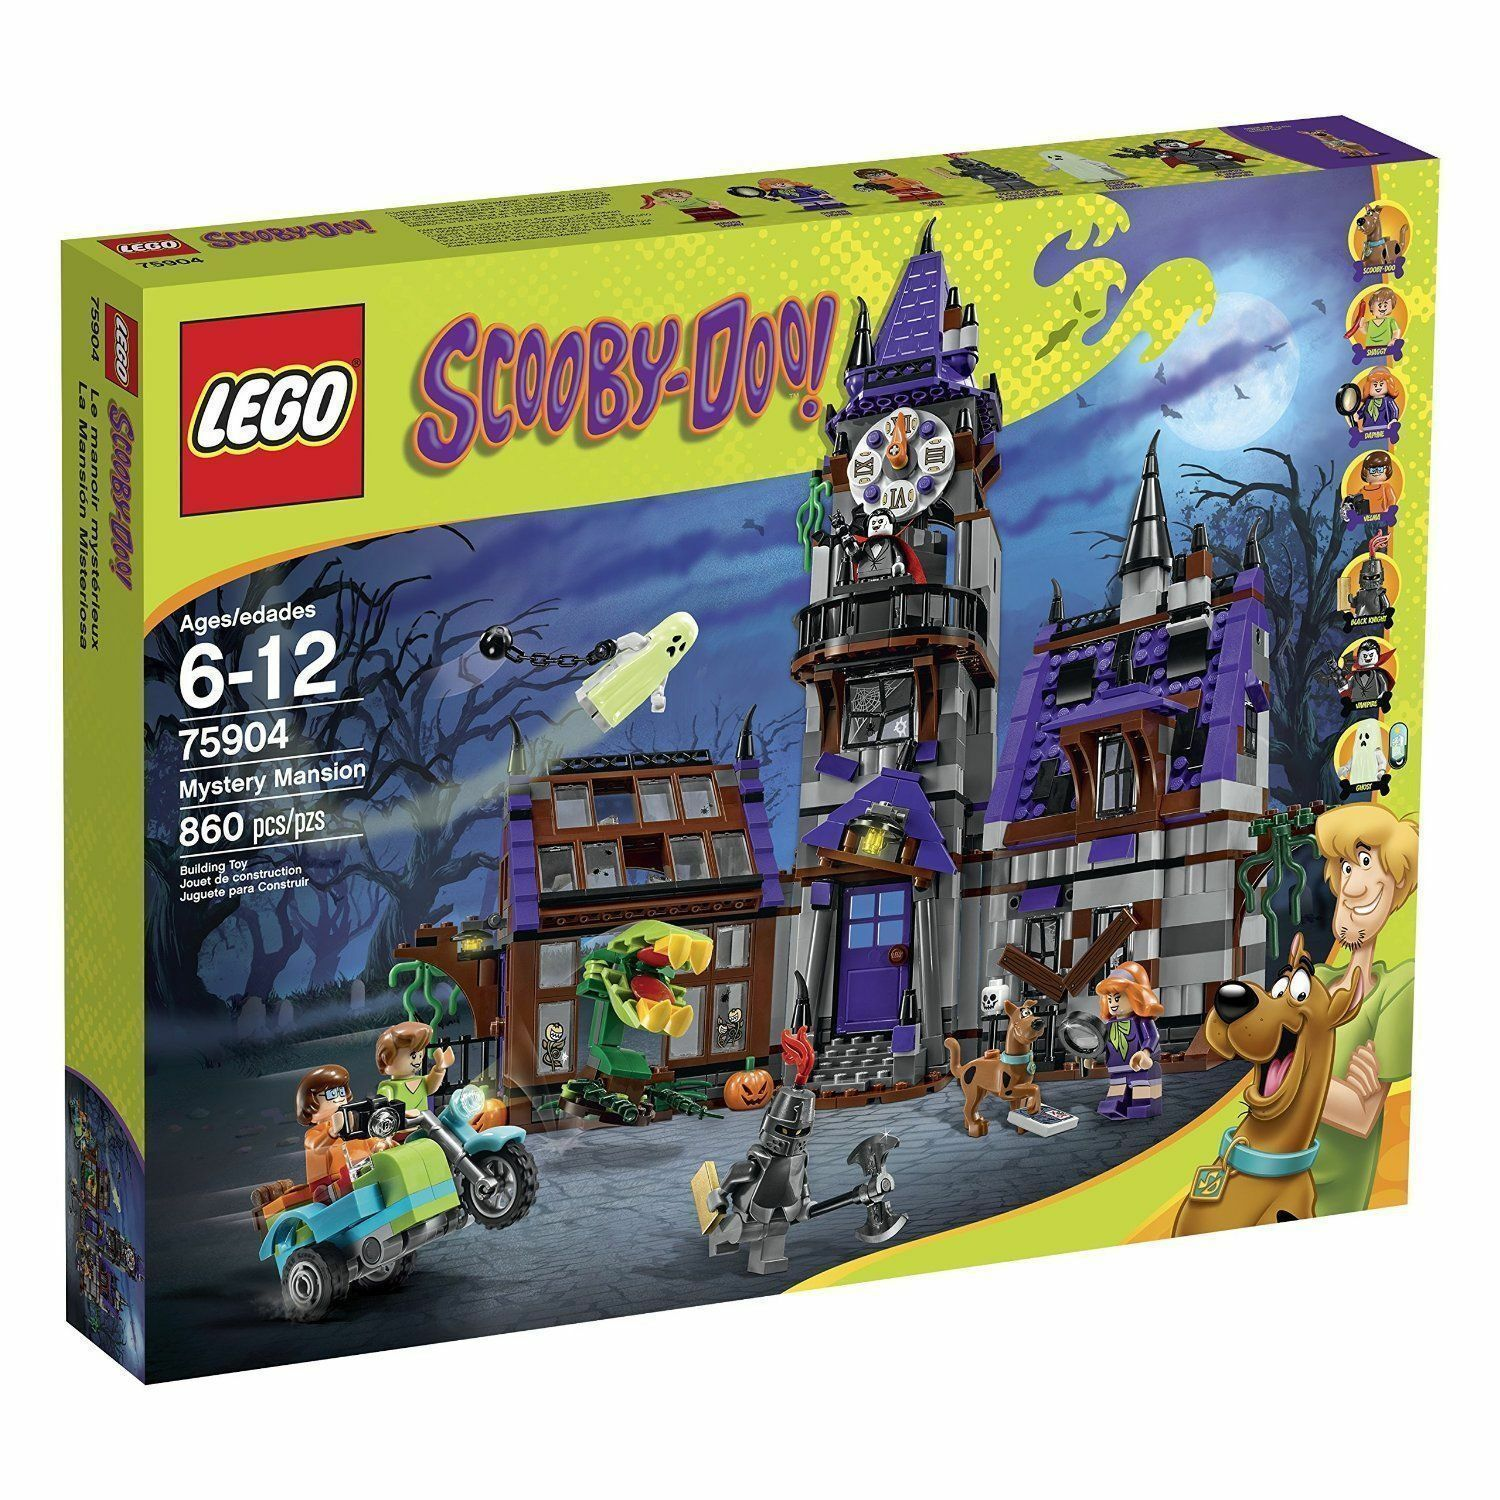 LEGO 75904 - SCOOBY-DOO - MYSTERY MANSION  NEW  SEALED BOX  LEGO SCOOBY